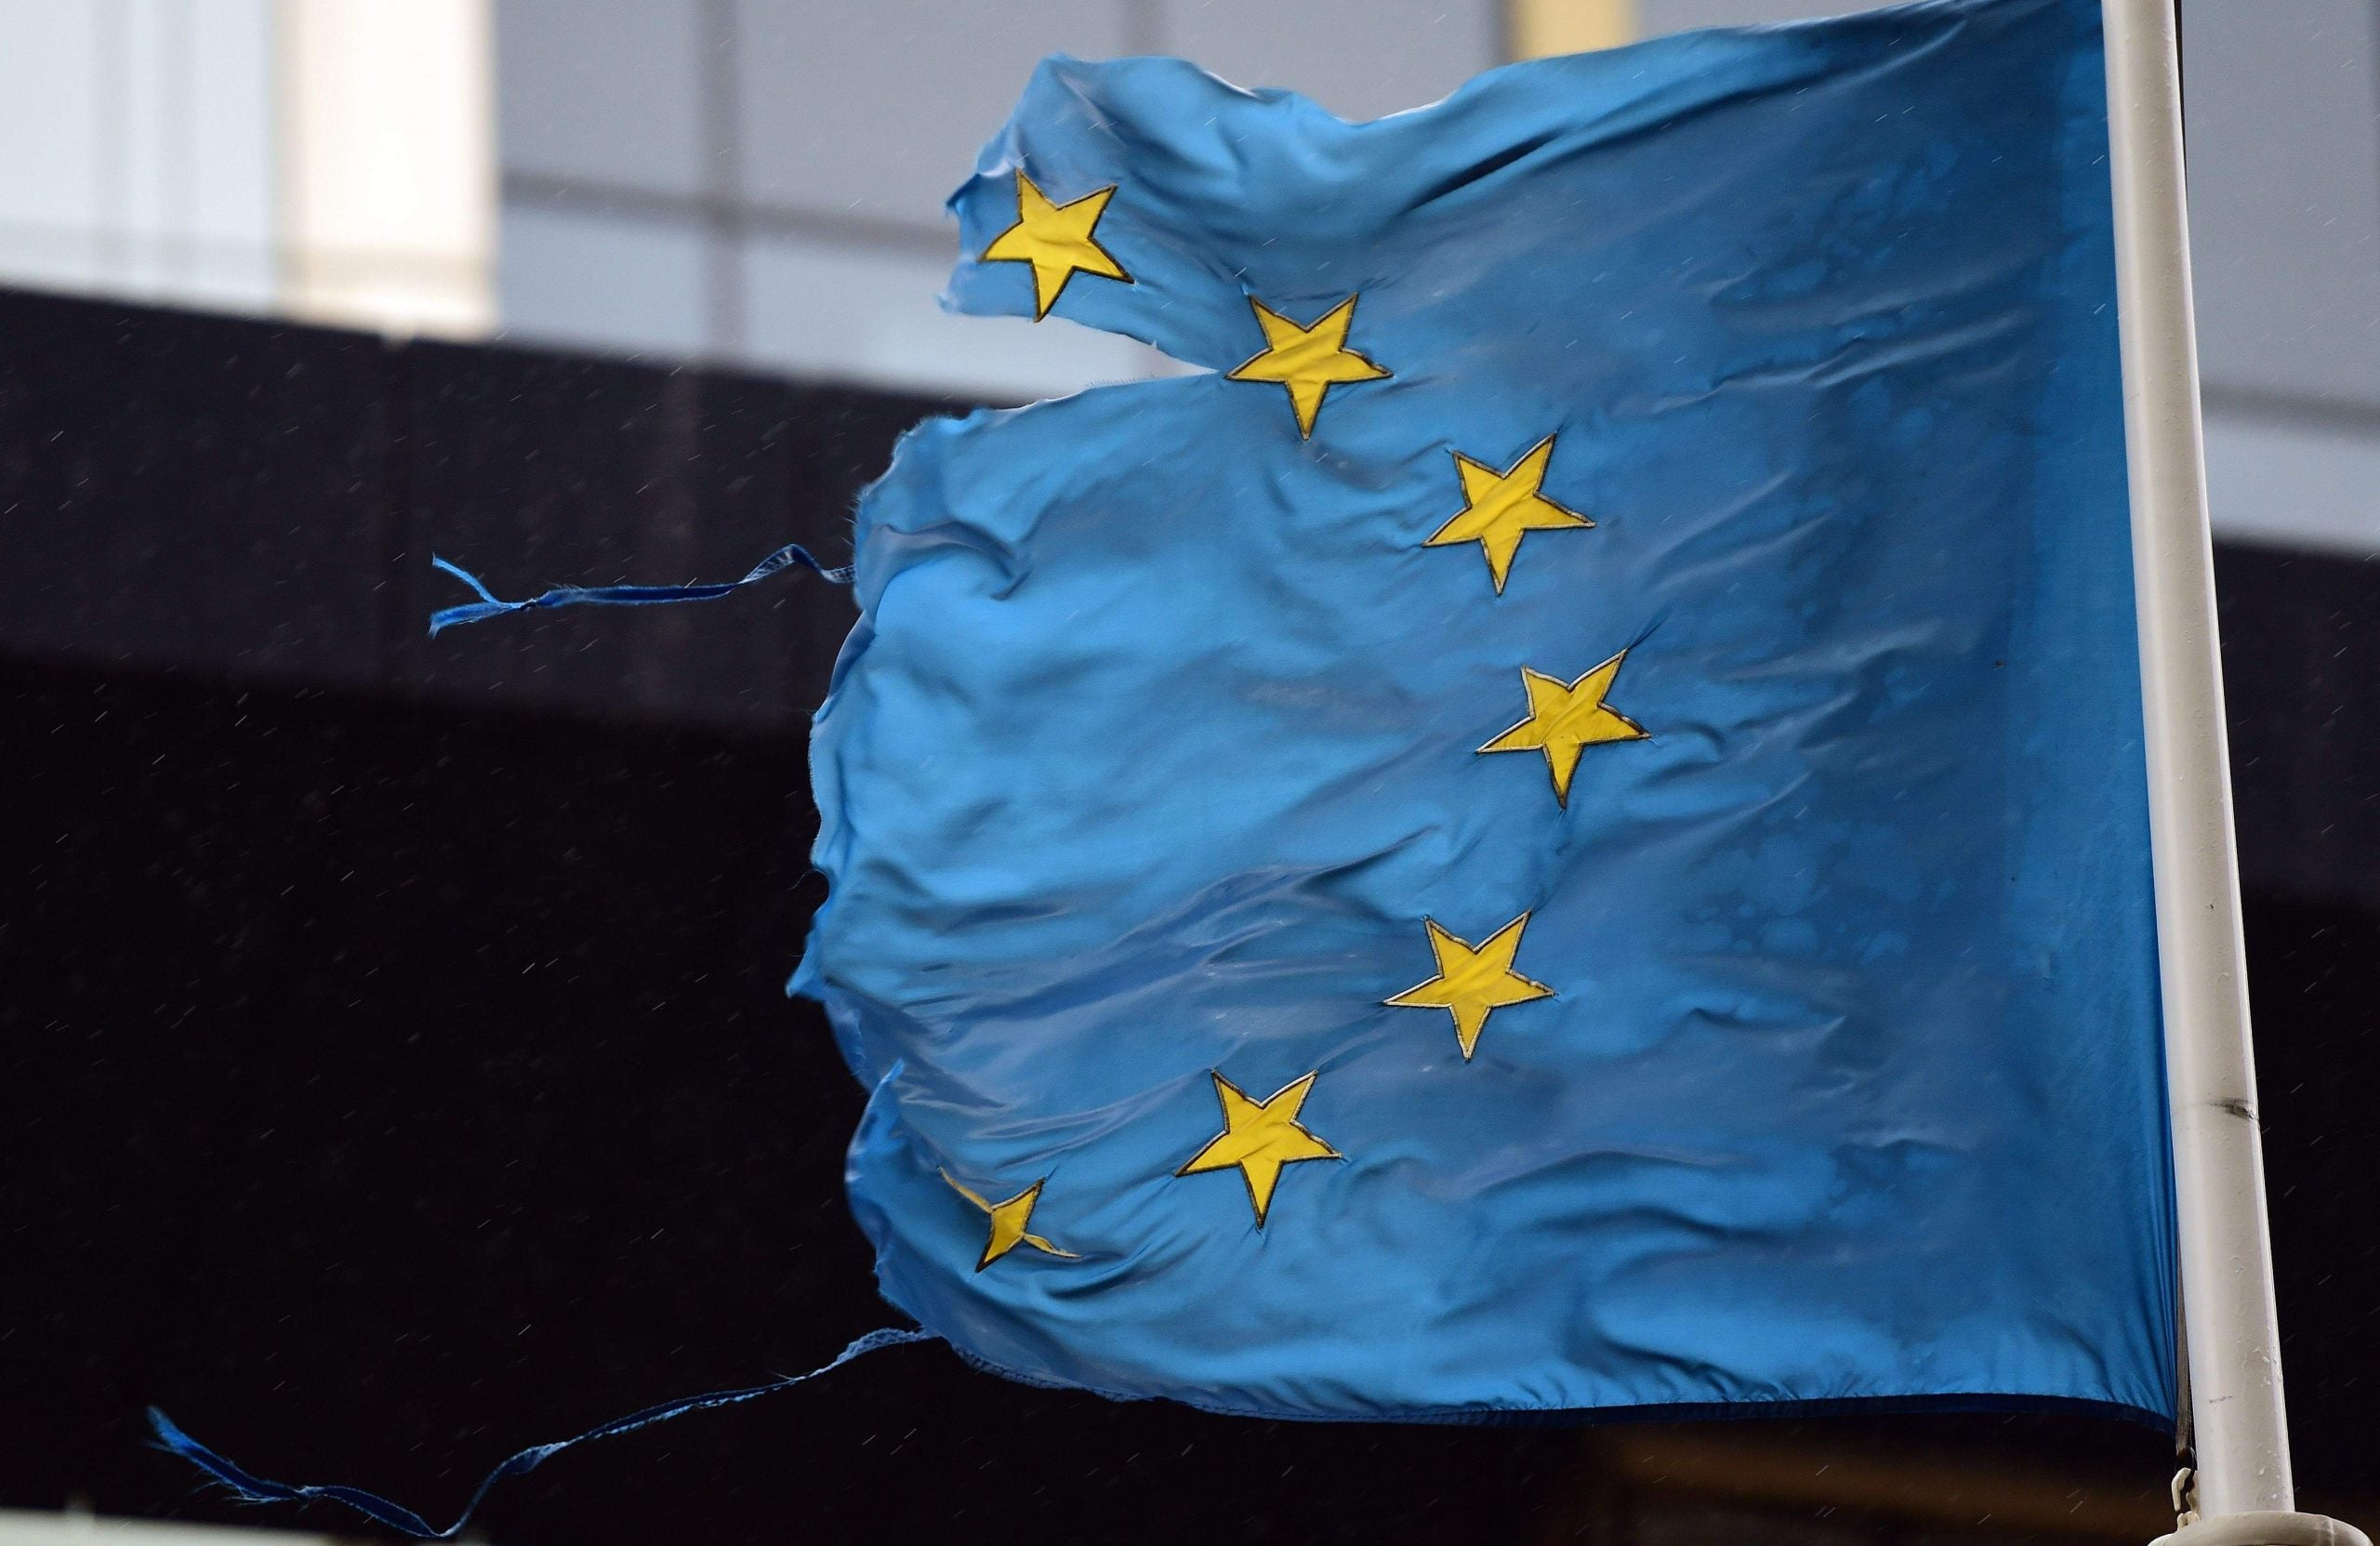 Want to win for women? Then you've got to vote to stay in Europe